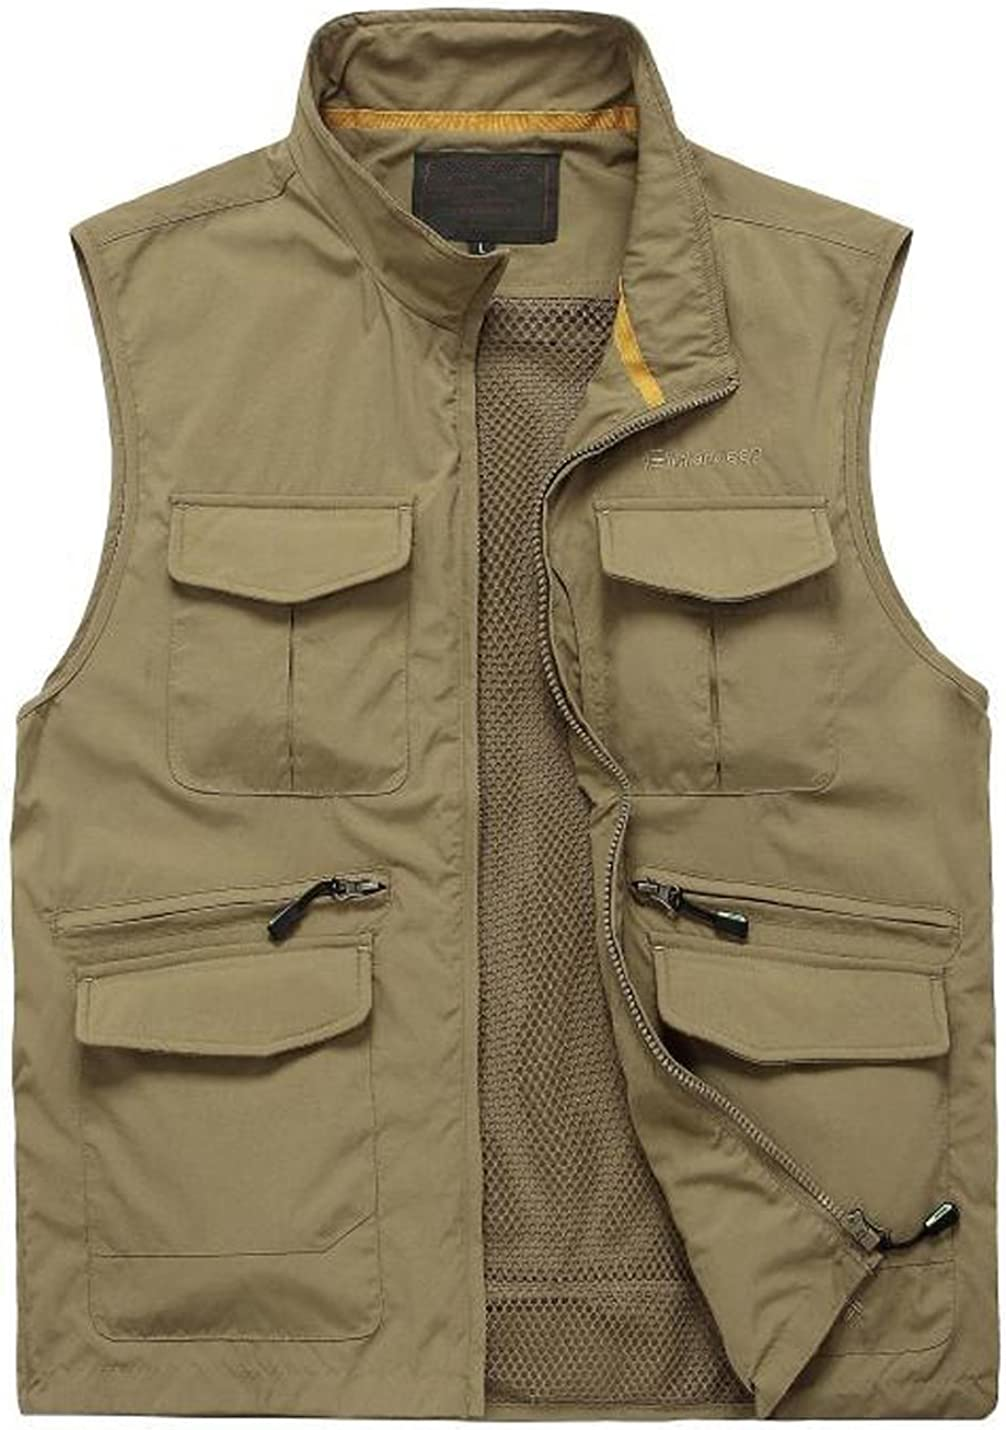 Yimoon Mens Casual Work Utility Outdoor Fishing Travel Vest